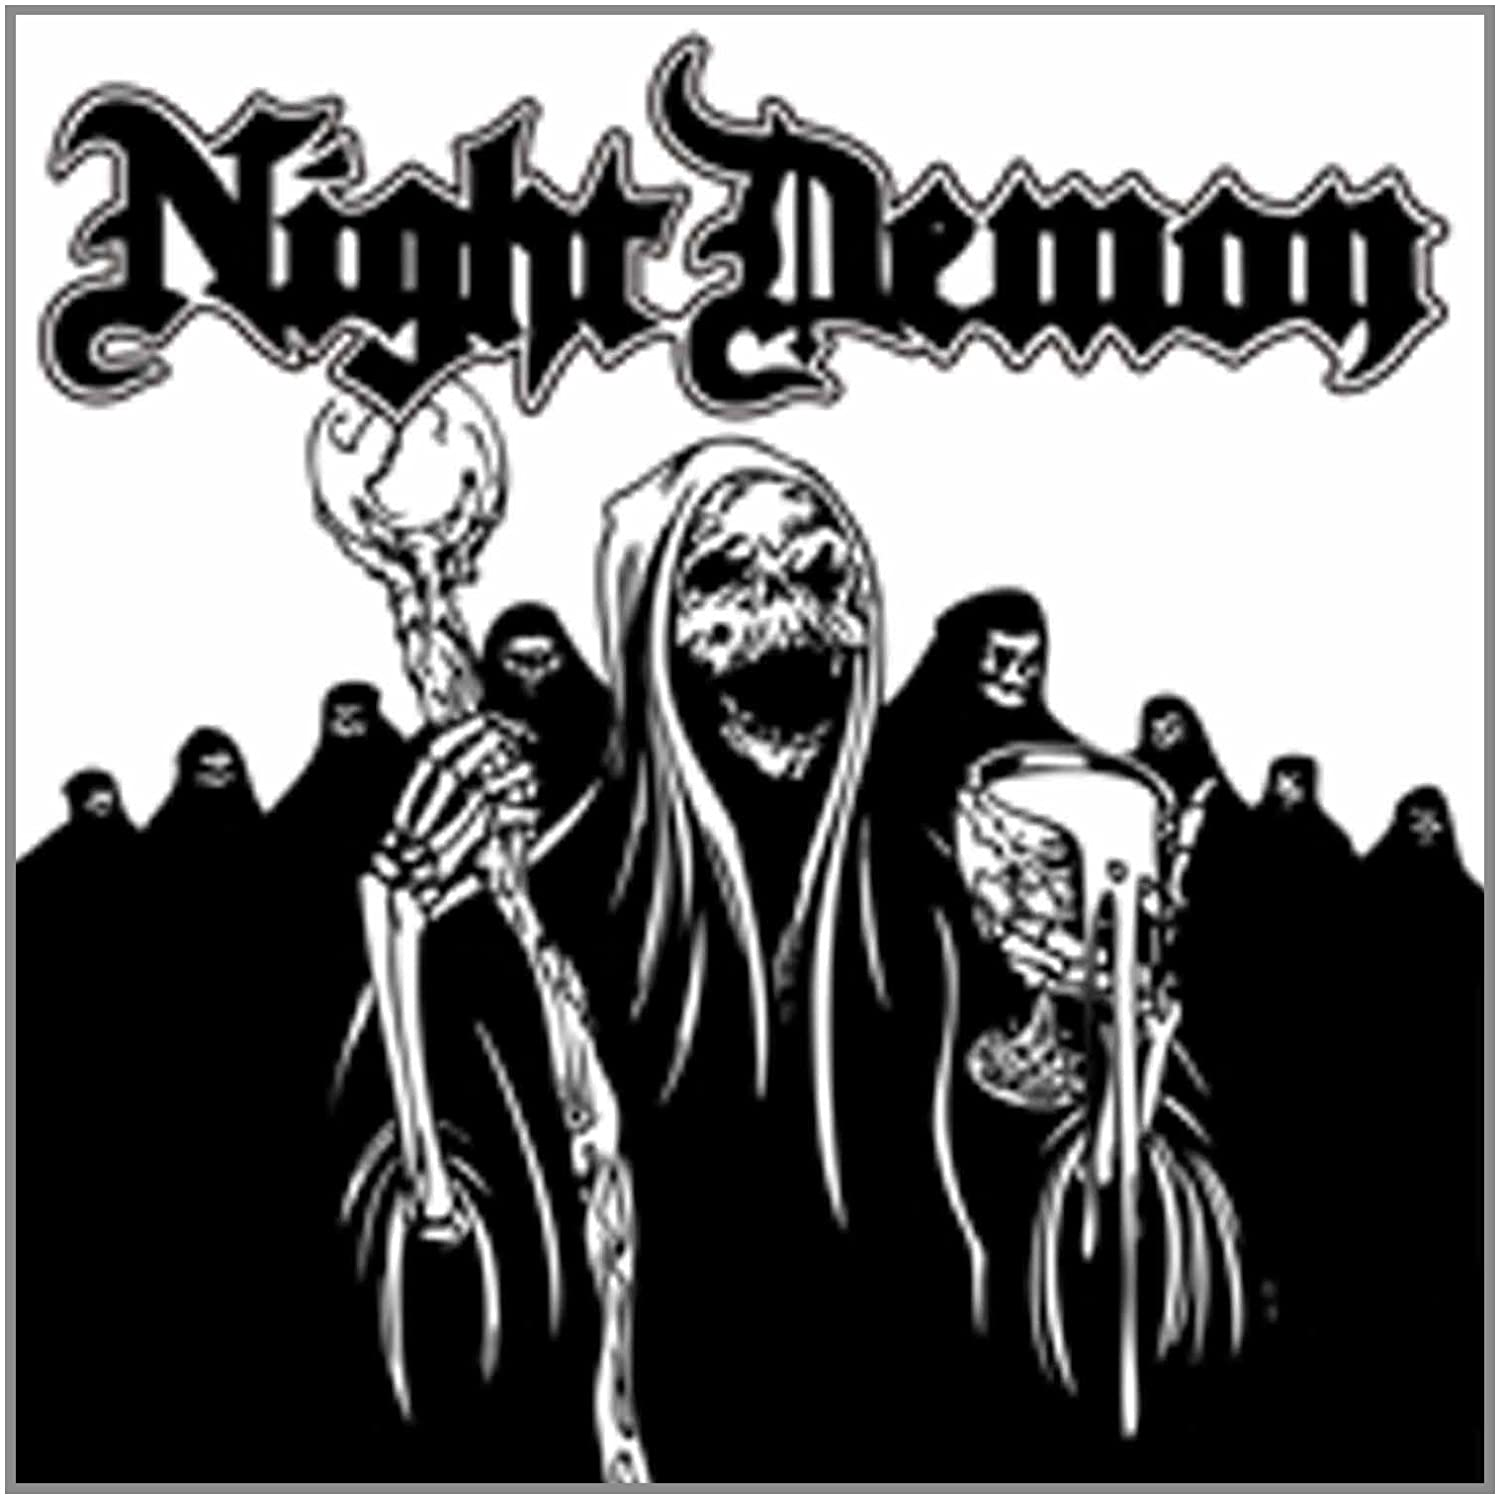 Night Demon Night Demon Amazon Com Music This is what is available directly from us on bandcamp. night demon night demon amazon com